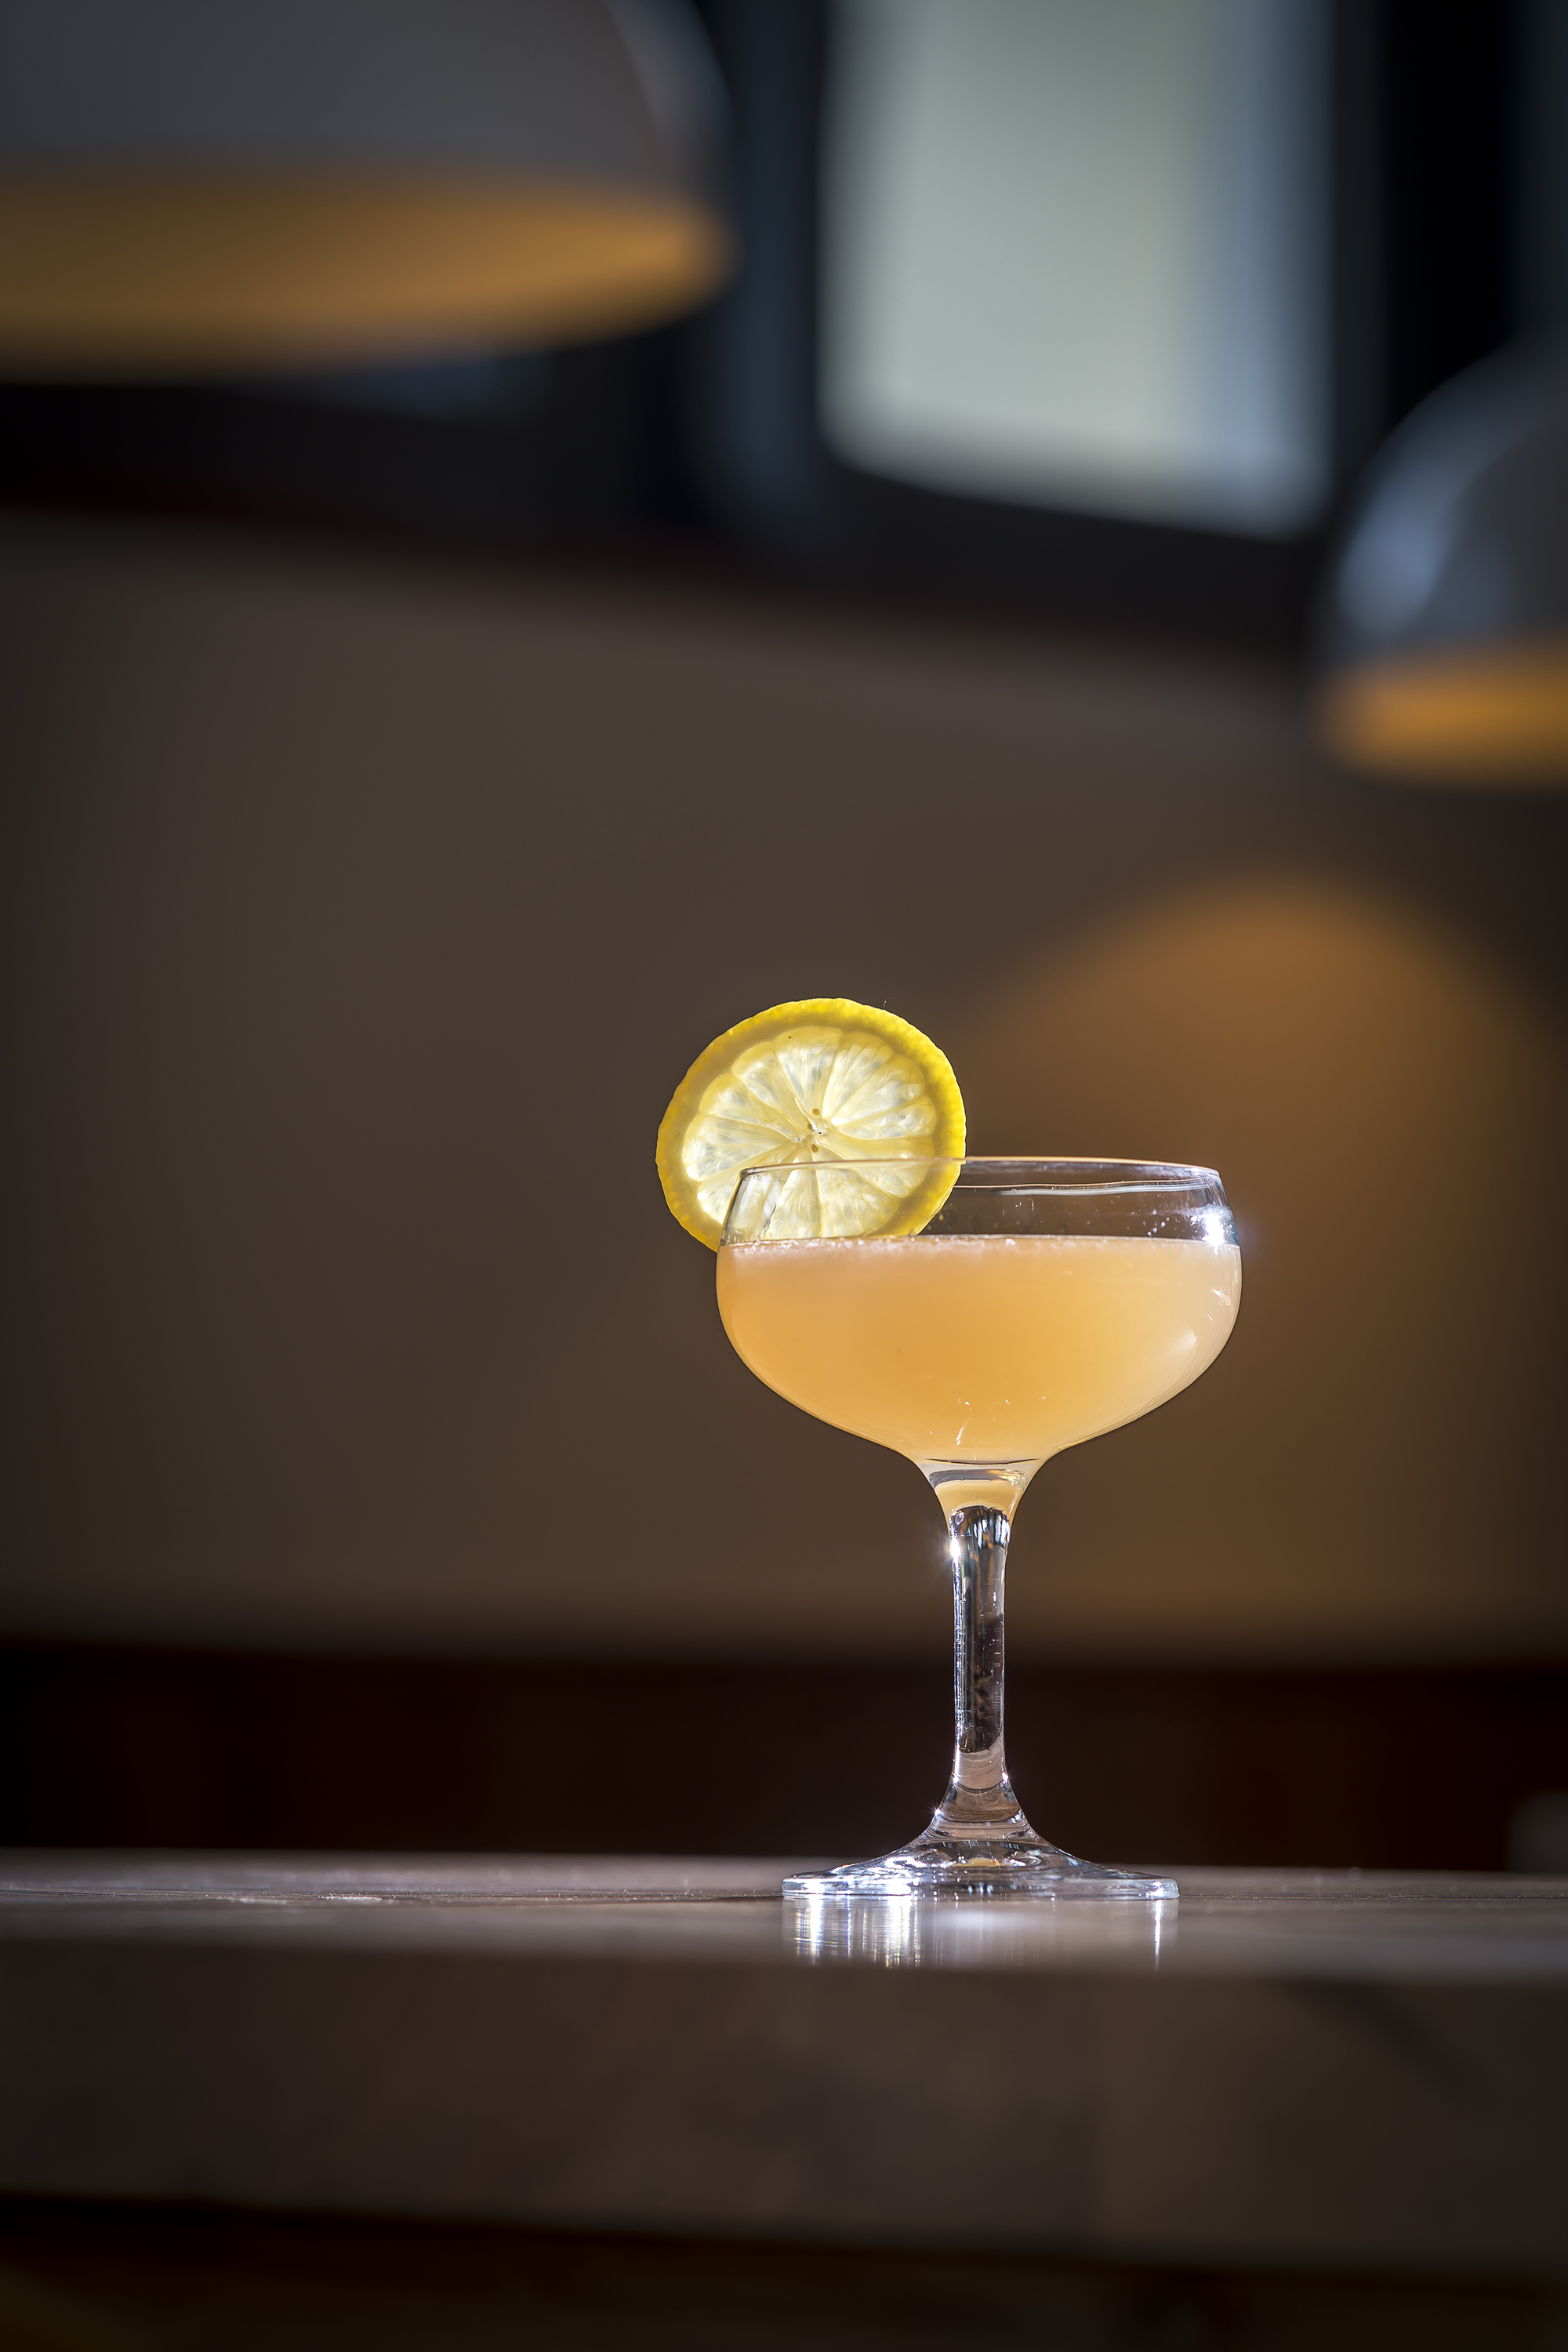 A destination located in the heart of Williamsburg, NY, The William Vale's southern Italian restaurant, Leuca, from Chef Andrew Carmellini's NoHo Hospitality Group, is serving up the Mamma Ricco cocktail crafted with vodka, rum, St. Germain, Strega, and grapefruit.